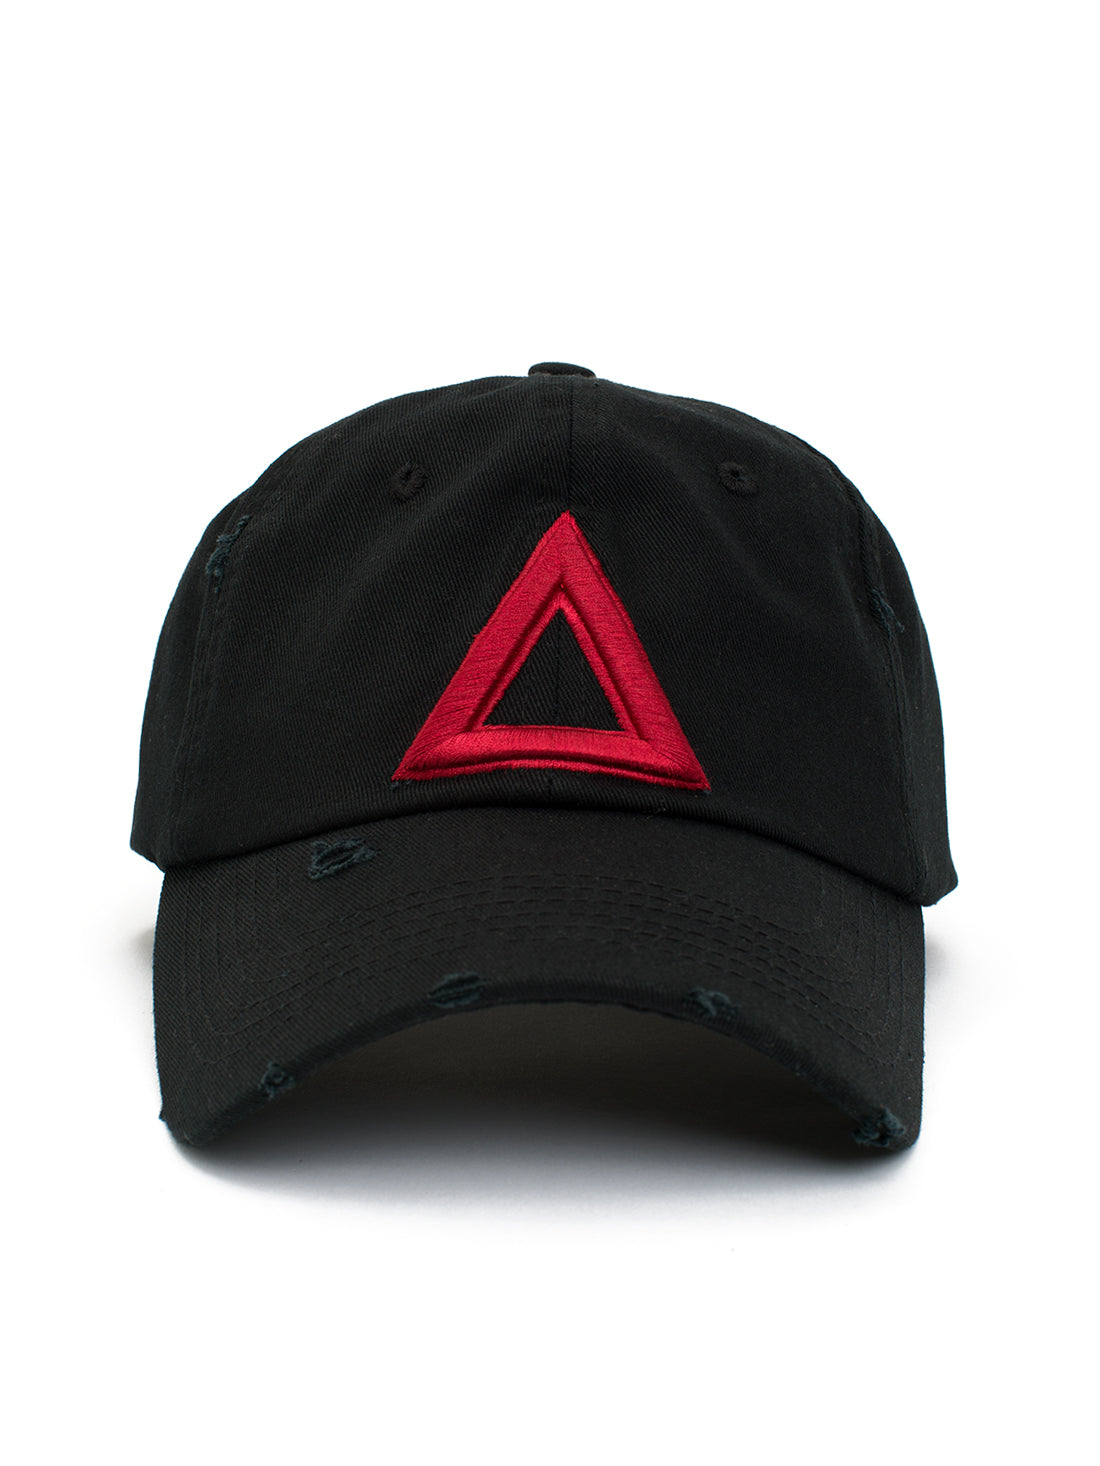 DISTRESS DAD HAT BLACK - Red TRI